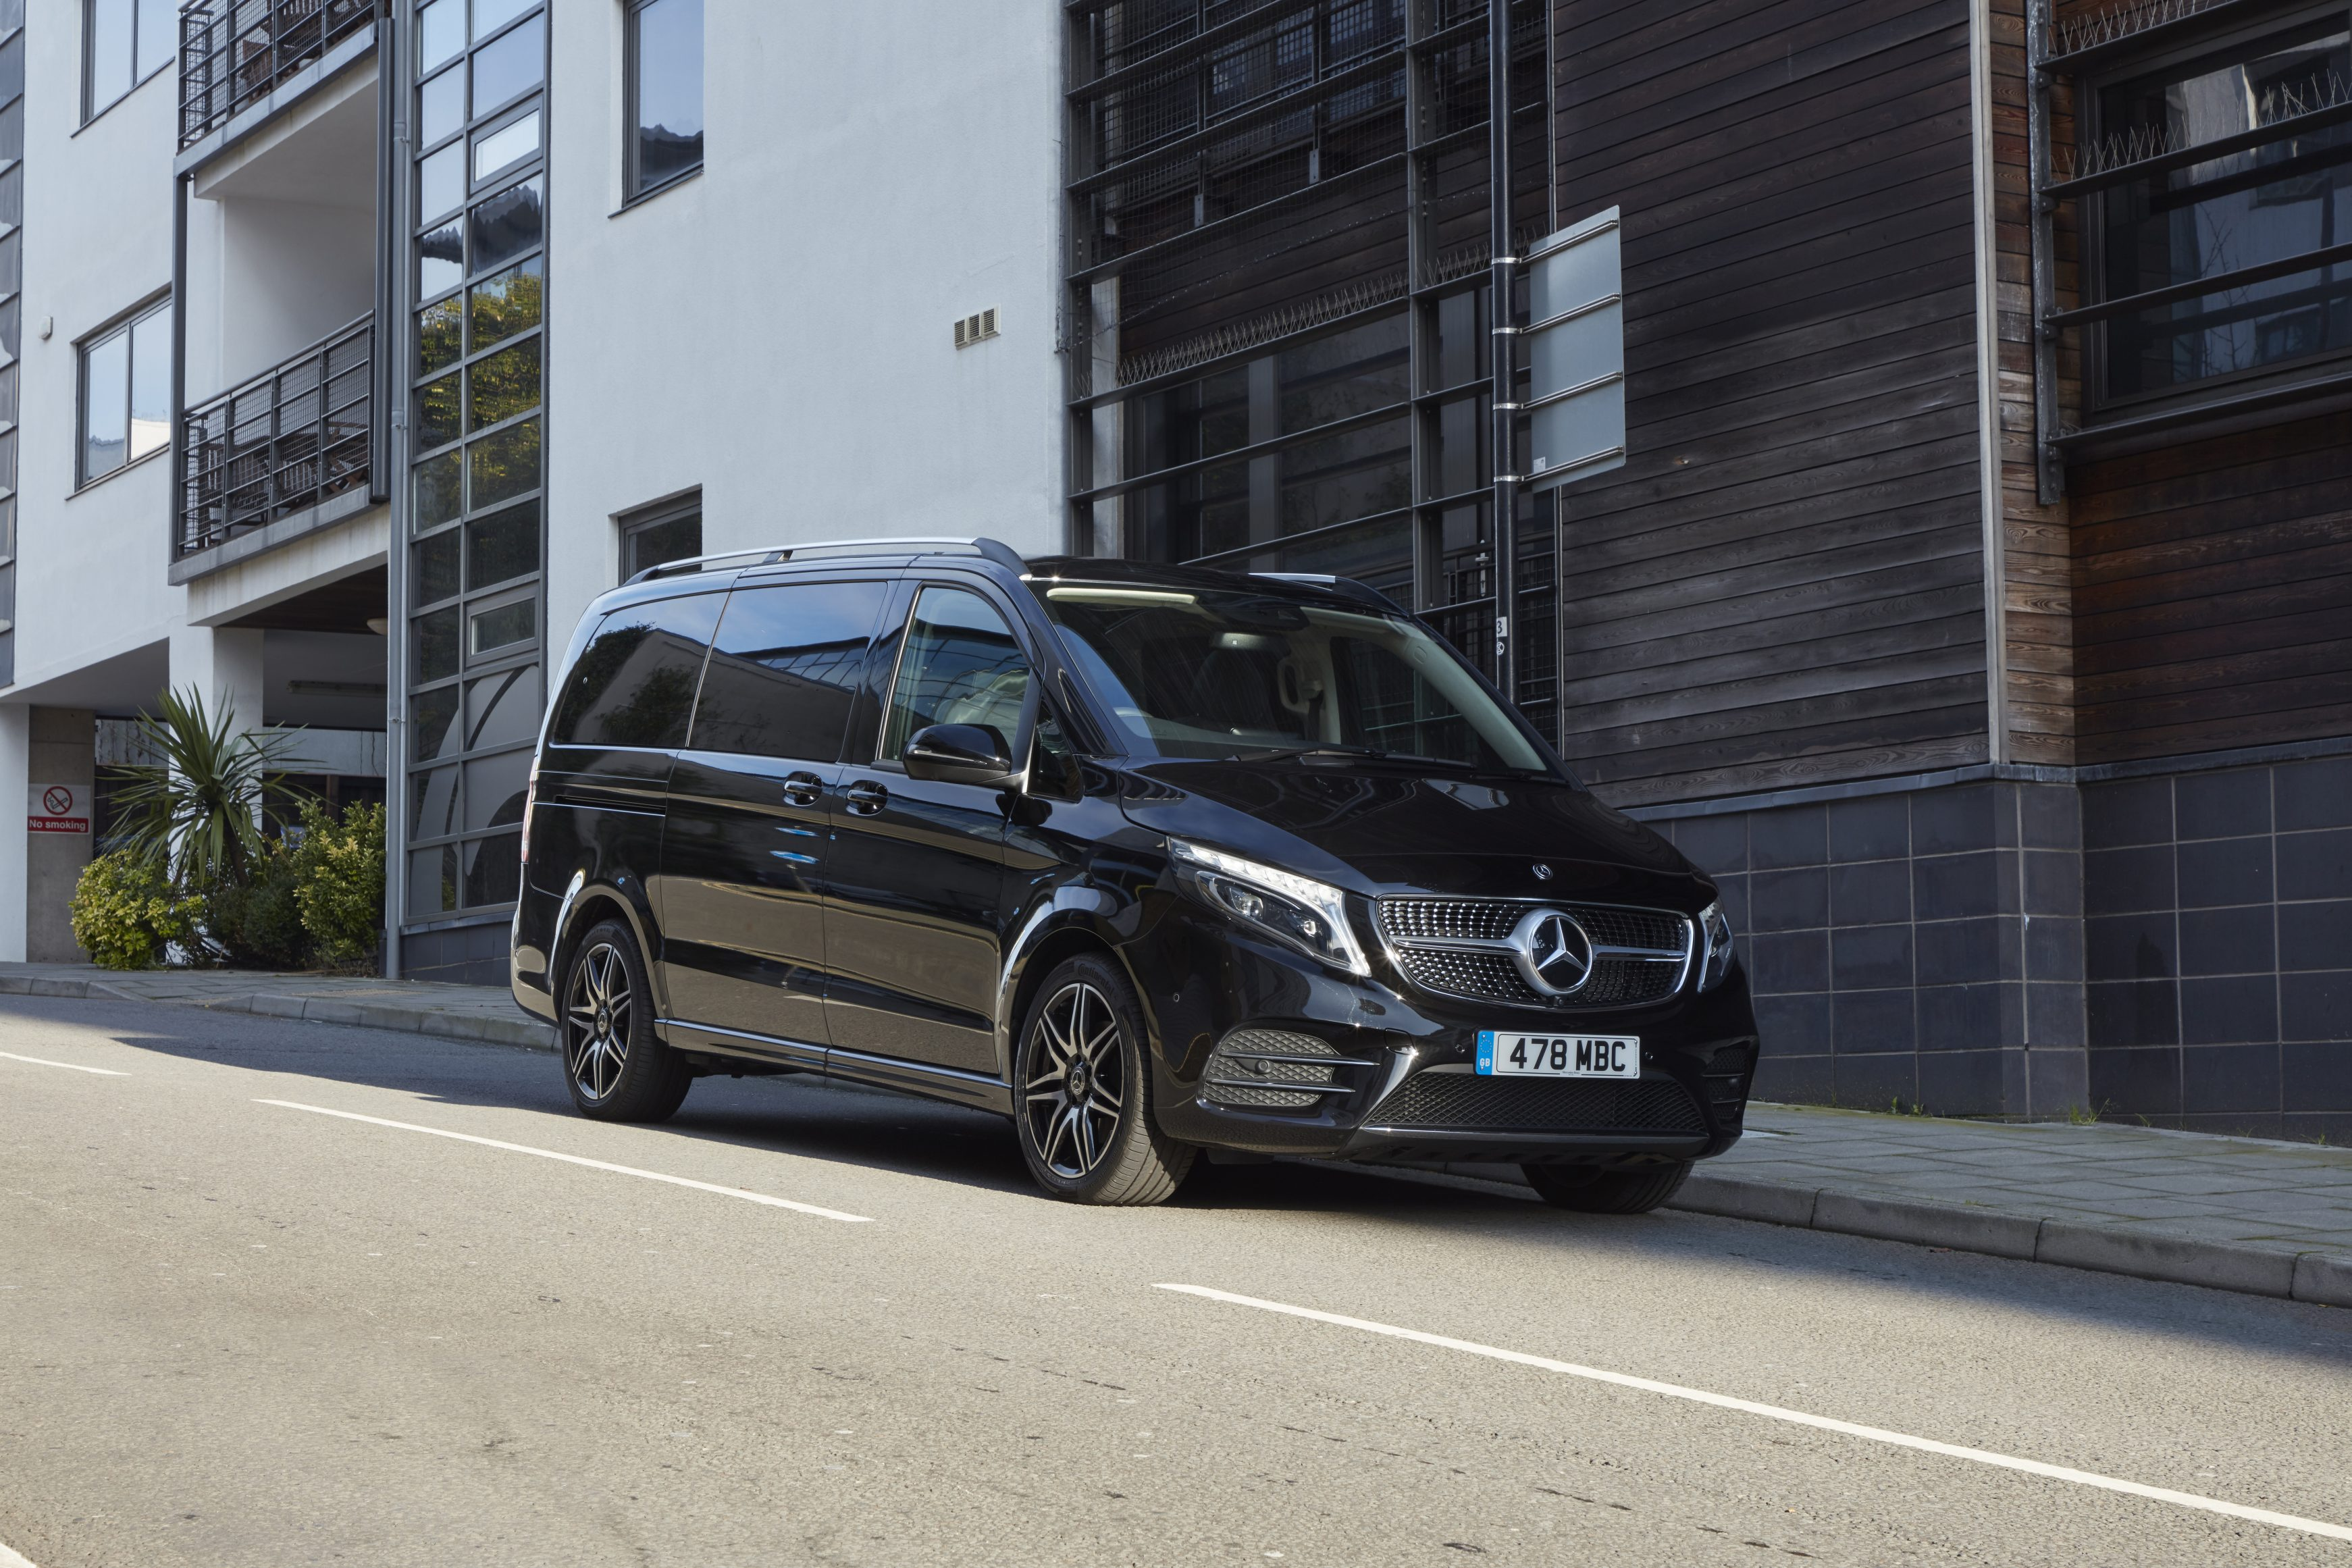 Best people carriers in 2021 - Mercedes-Benz V-Class